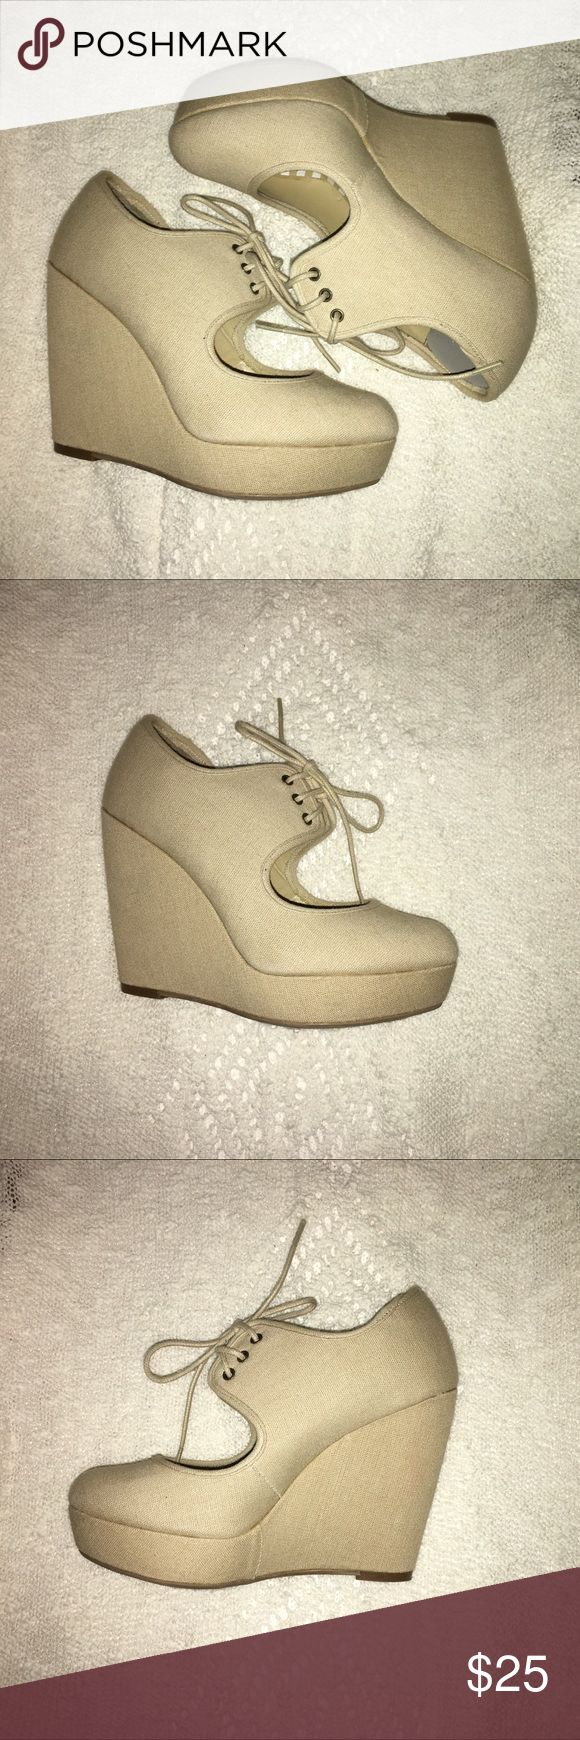 Tan wedge shoes Tan wedge shoes that tie up. Never worn. Offered accepted!! Call It Spring Shoes Wedges